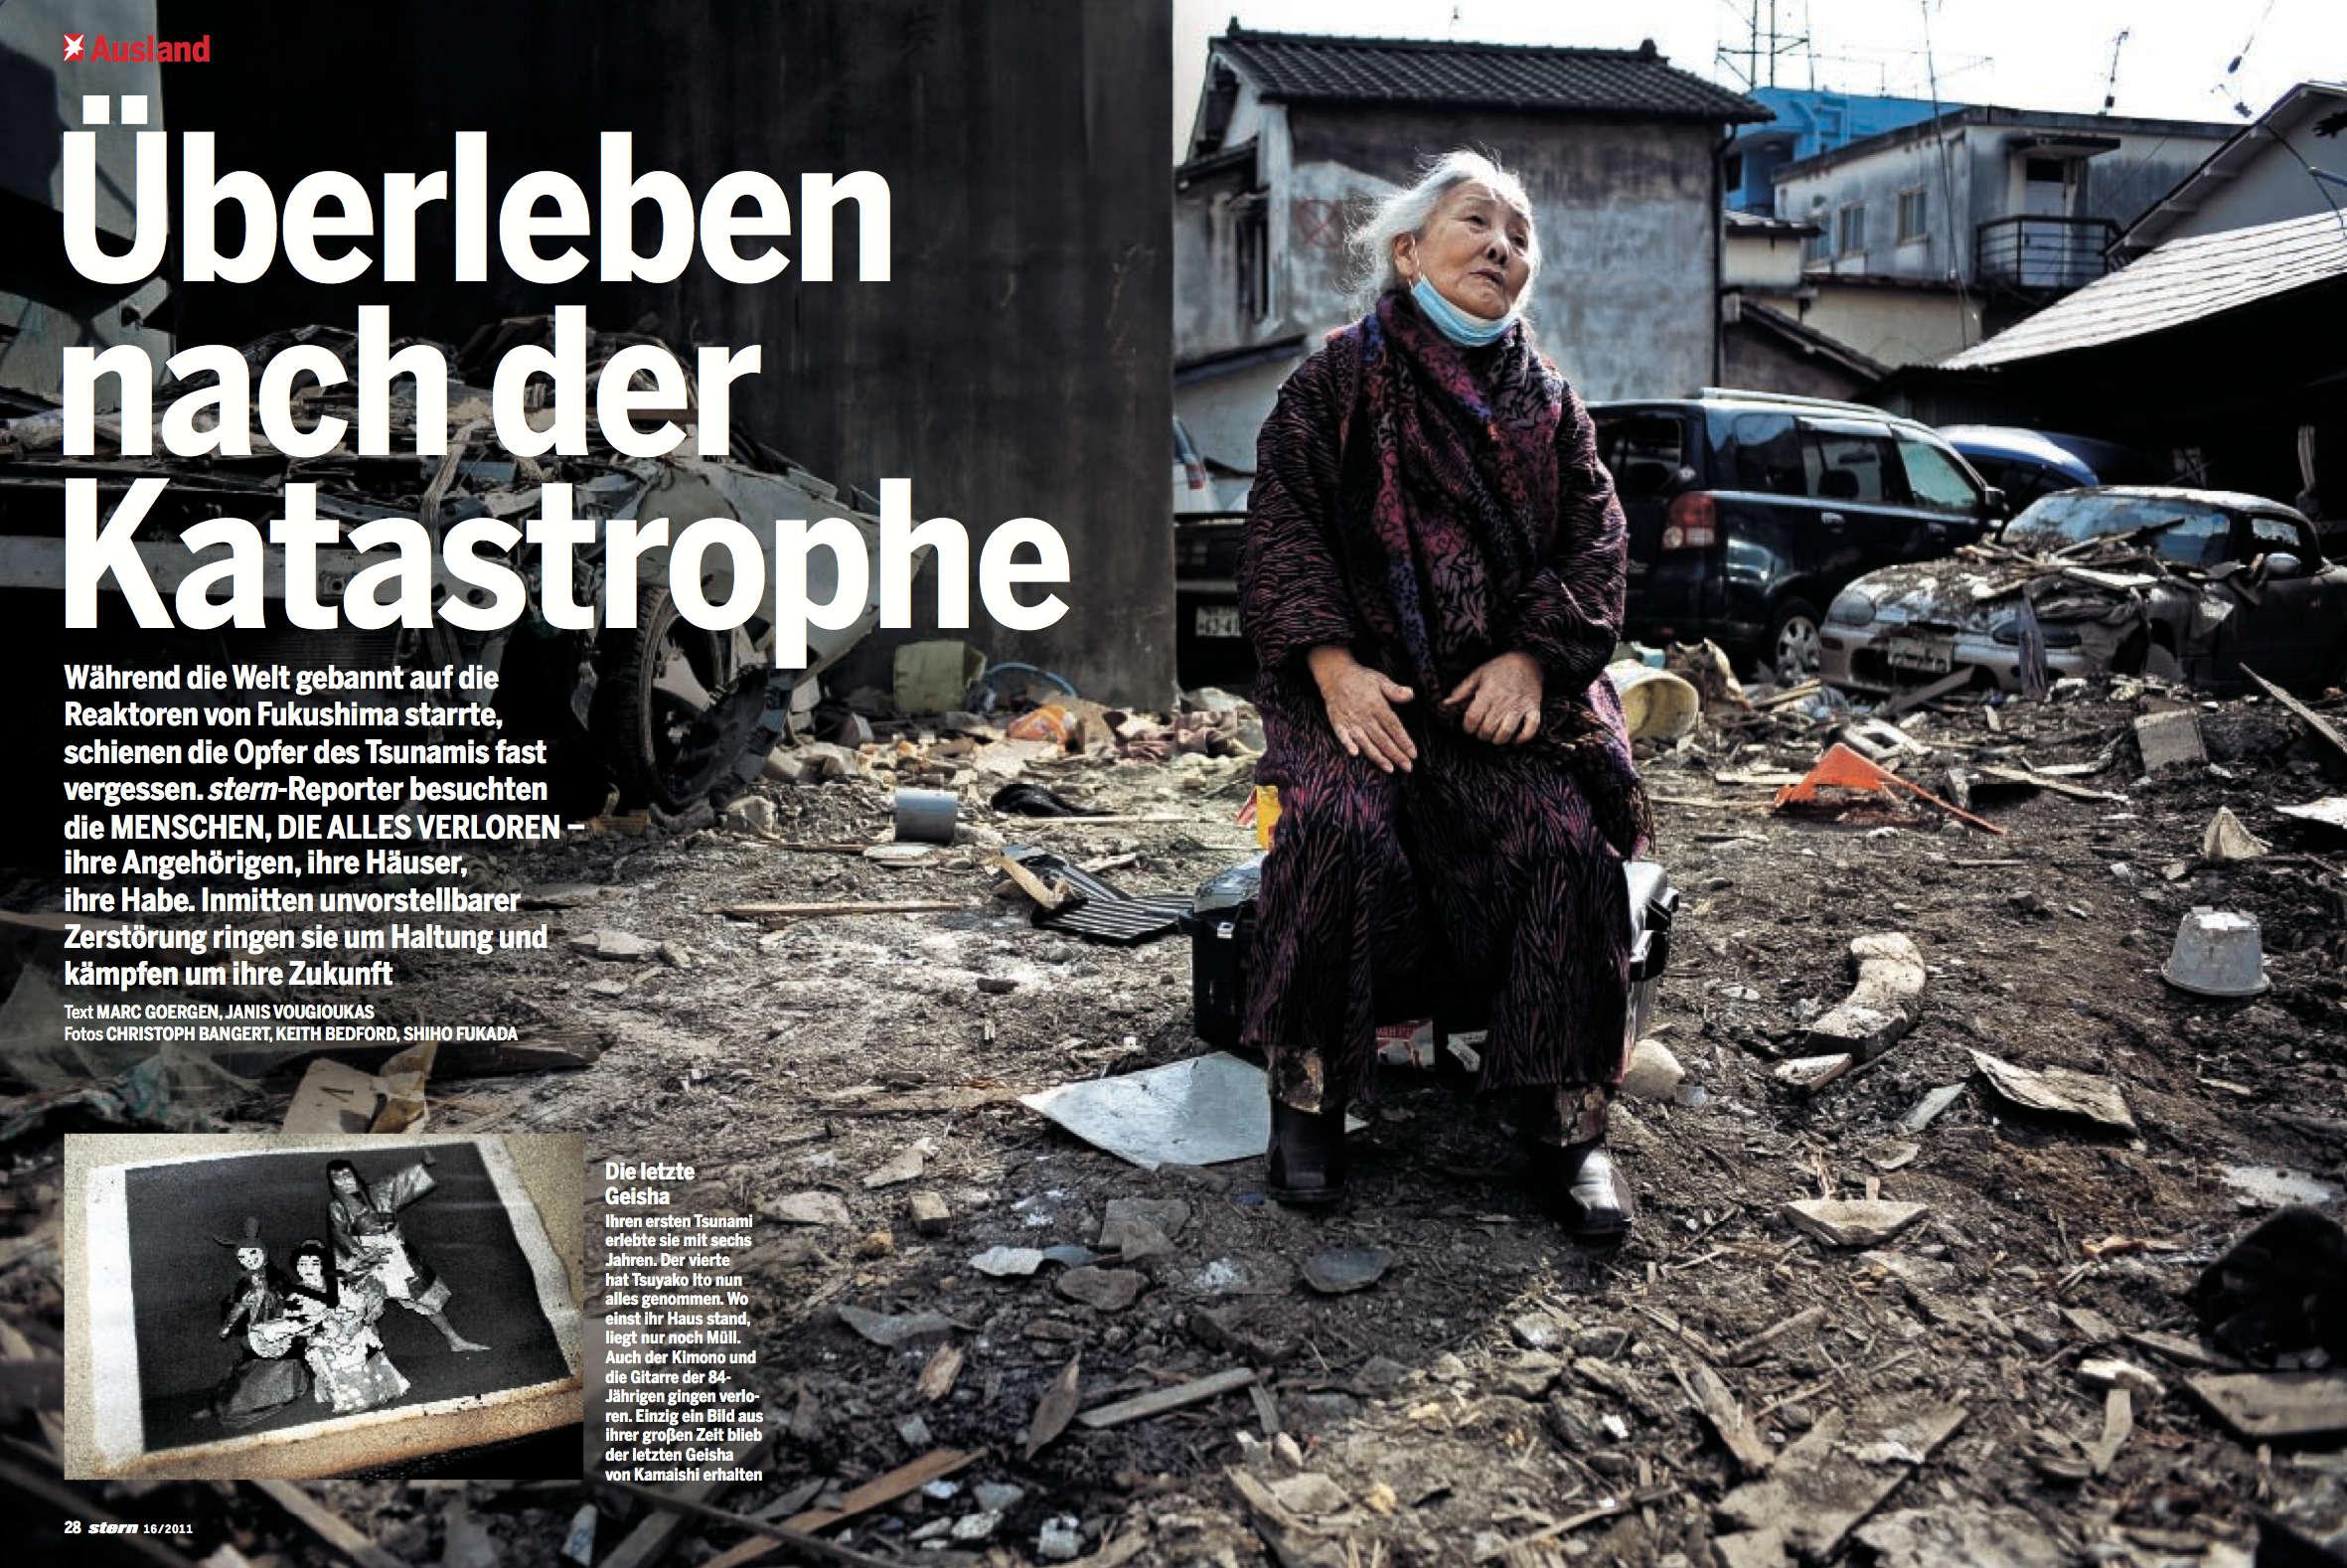 """Survival after the catastrophe"", stern16/2011 As the world was peering banished at the reactors in Fukushima, the victims seem to be forgotten. stern-reporters interviewed people, who have lost everything - their relatives, houses and belongings. Admidst unimaginable destruction, they struggle and fight for their future. Photo: Keith Bedford"